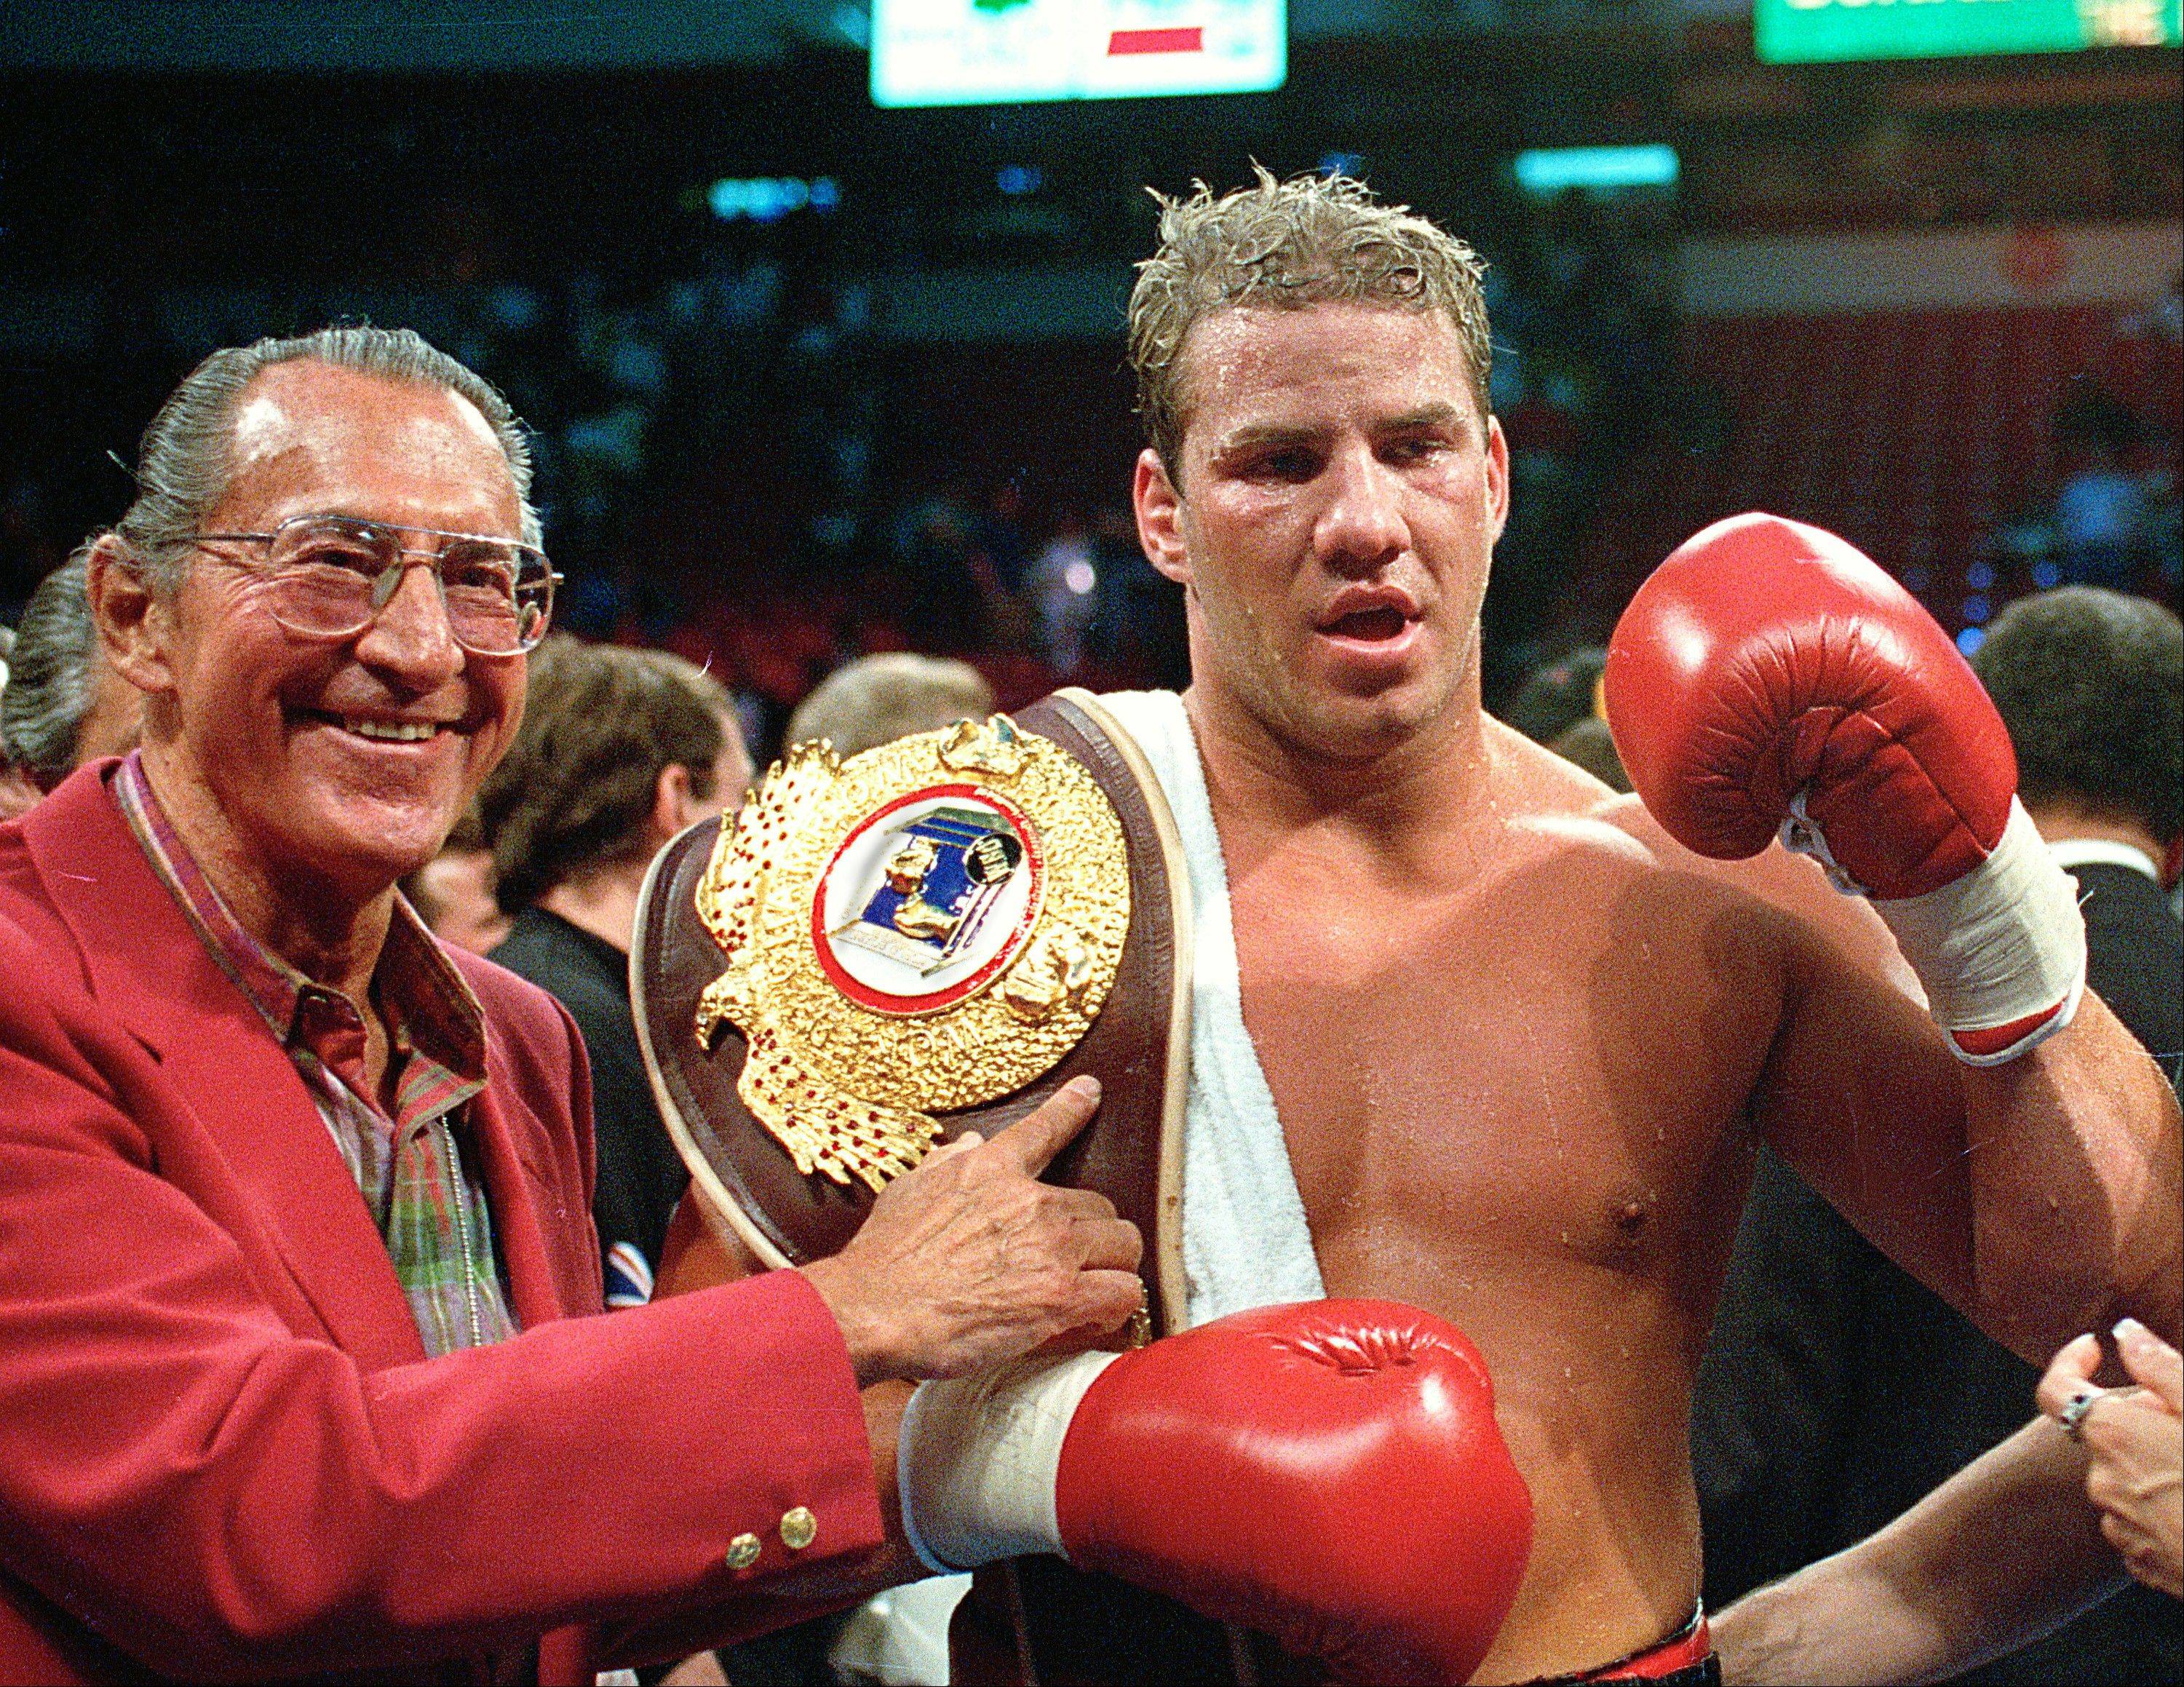 In this June 7, 1993 file photo, newly crowned WBO heavyweight champion Tommy Morrison receives his championship belt after defeating George Foreman in Las Vegas, Nev. Morrison, a former heavyweight champion who gained fame for his role in the movie �Rocky V,� has died. He was 44. Morrison�s former manager, Tony Holden says his longtime friend died Sunday night, Sept. 1, 2013, at a Nebraska hospital.